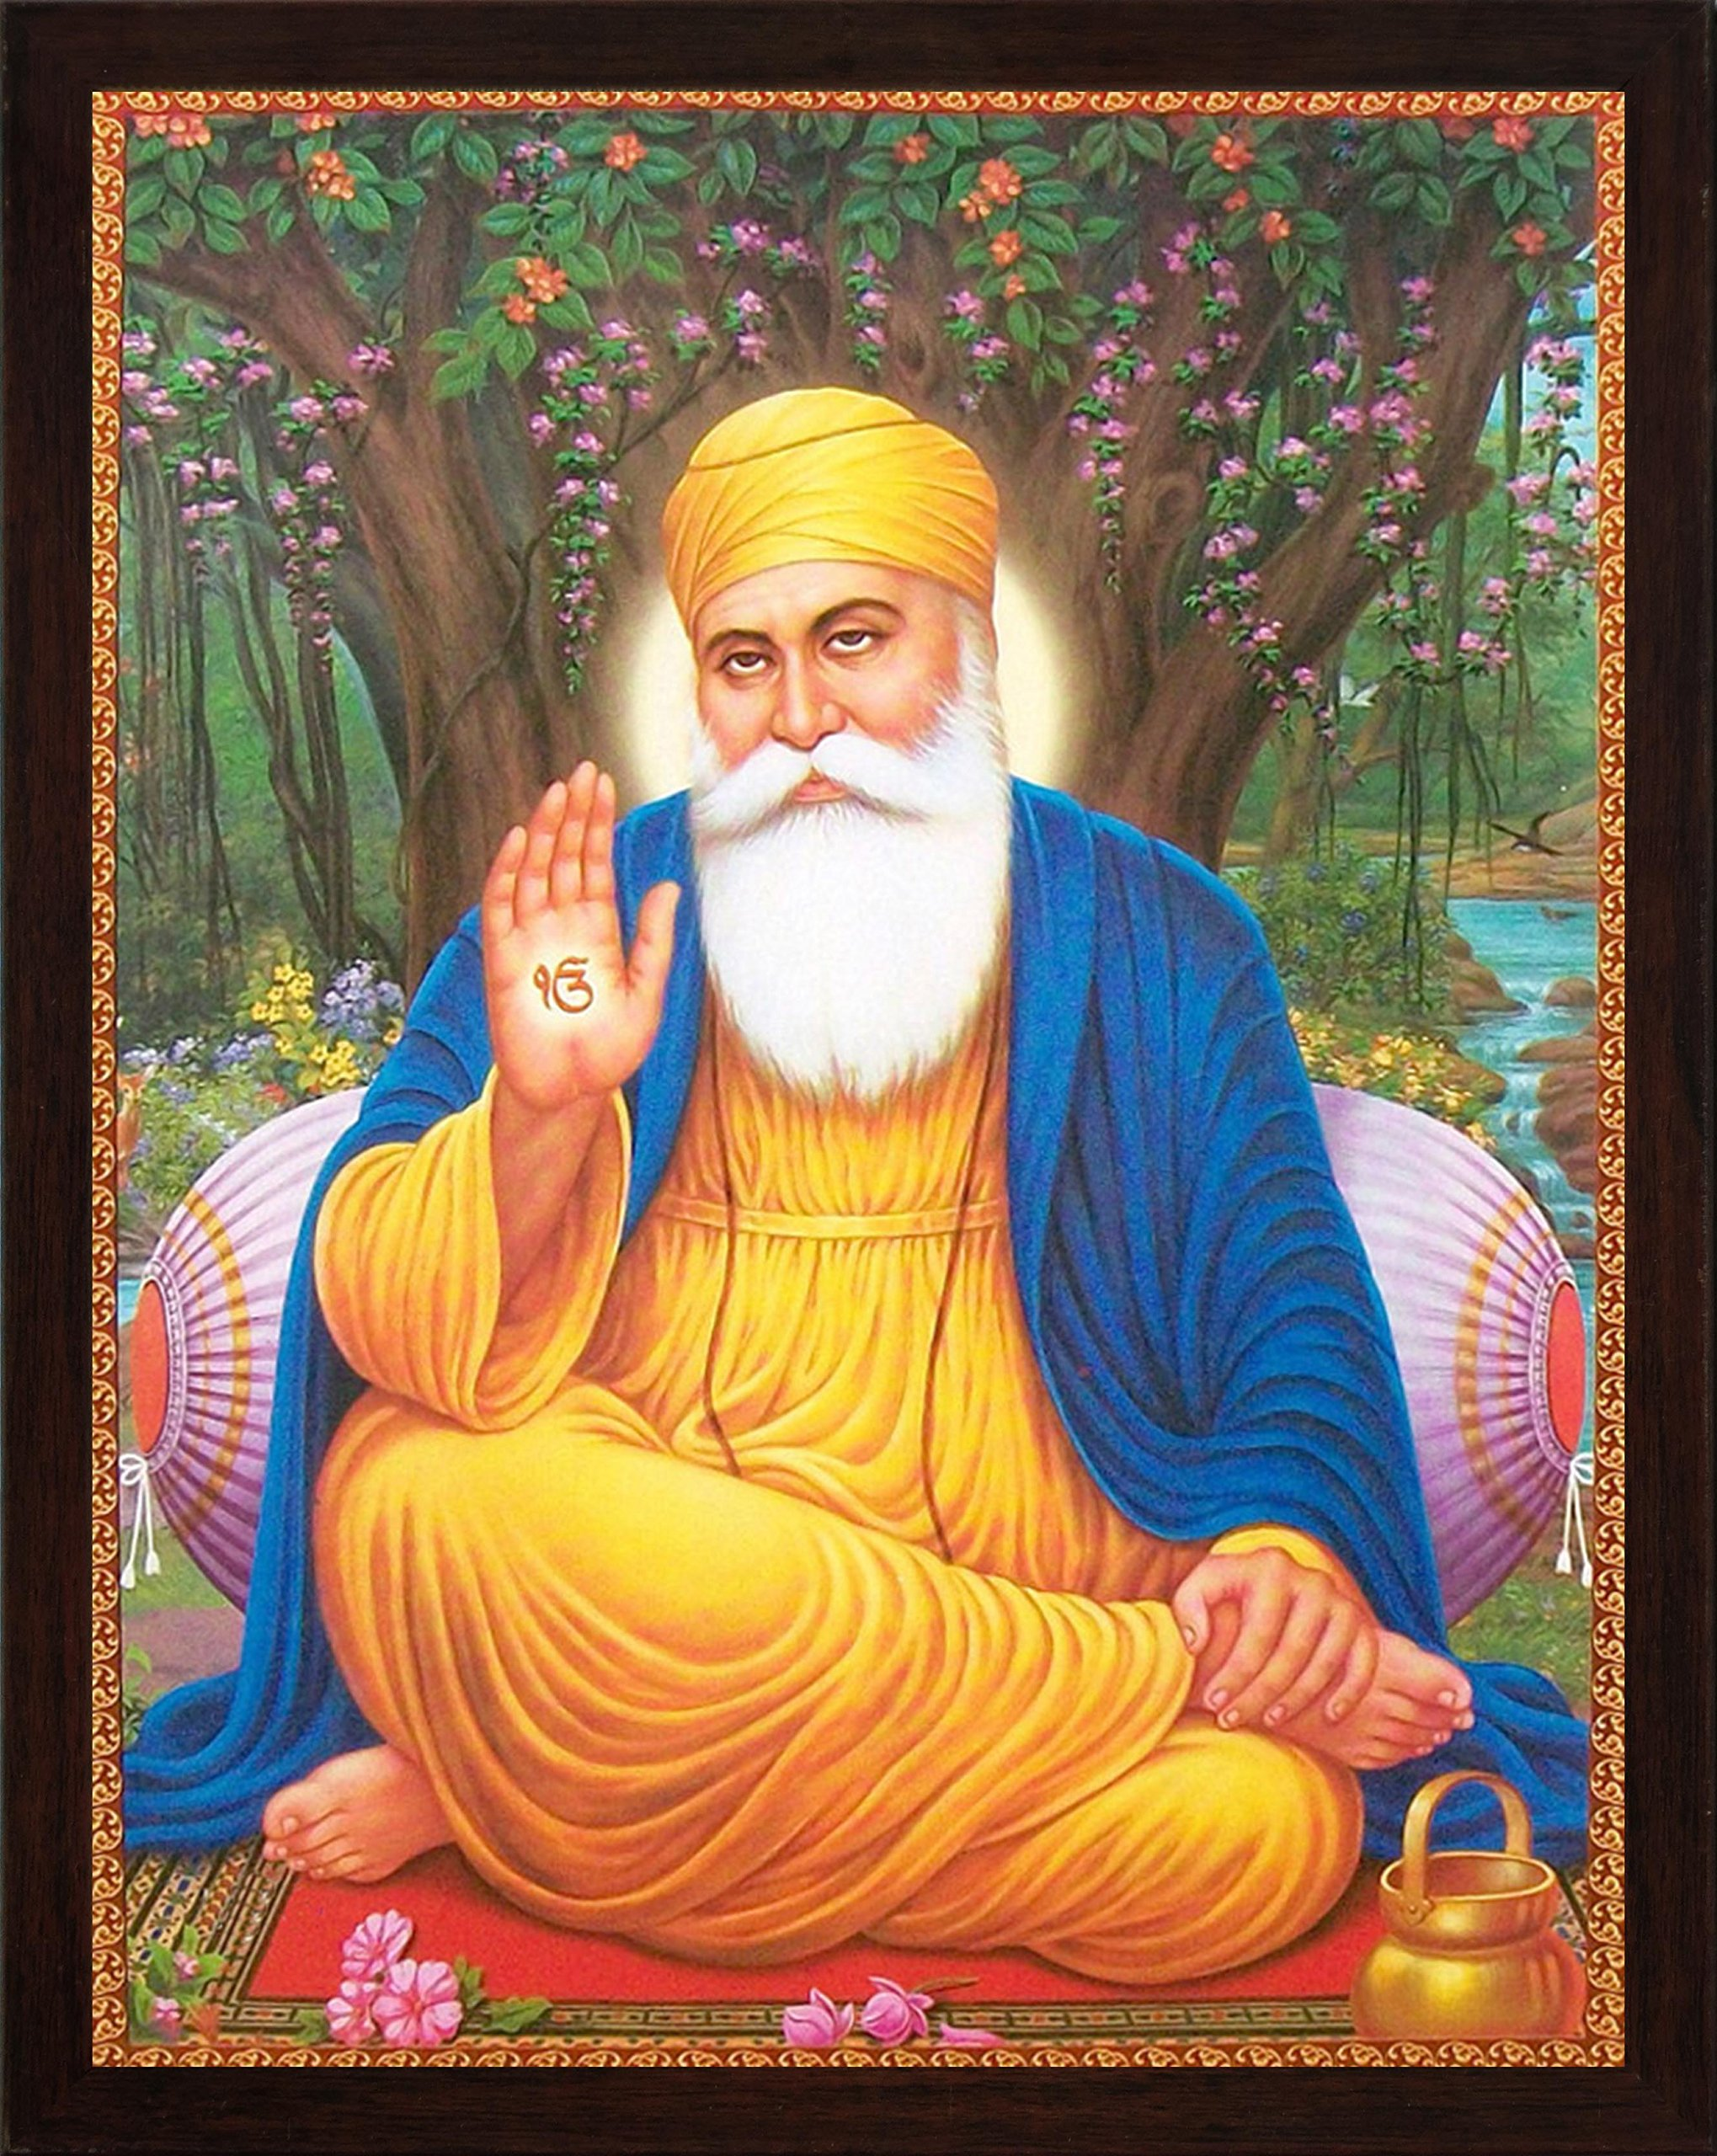 Handicraft Store Guru nanak Dev ji Sitting Under Tree and Giving Blessings with ekumkar Symbol in Hand, A Painting Poster with Frame, Must for Family Home/Office/Gift Purpose